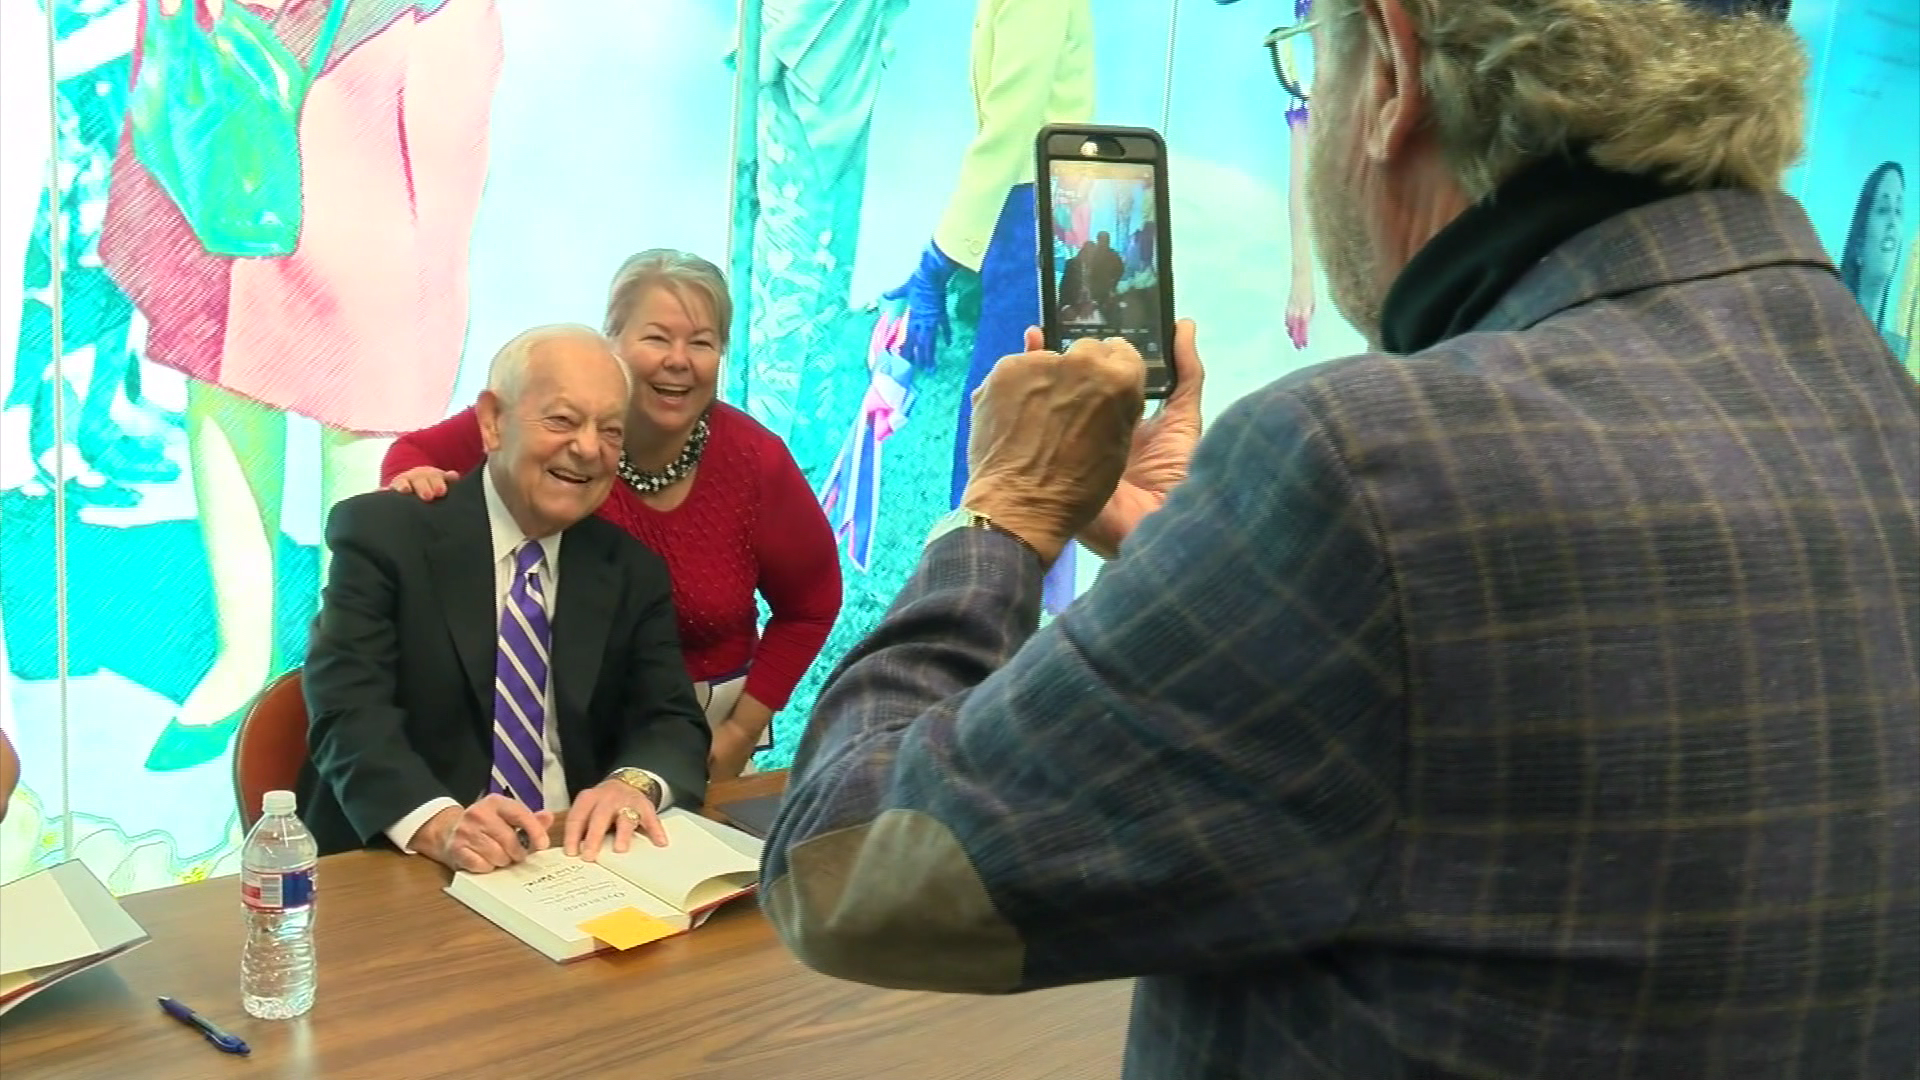 CBS News journalist Bob Schieffer was in Austin Thursday interviewing Madeleine Albright about foreign policy and diplomacy. He was also promoting his new book called, Overload: Finding Truth in Today's Deluge of News. (CBS Austin)